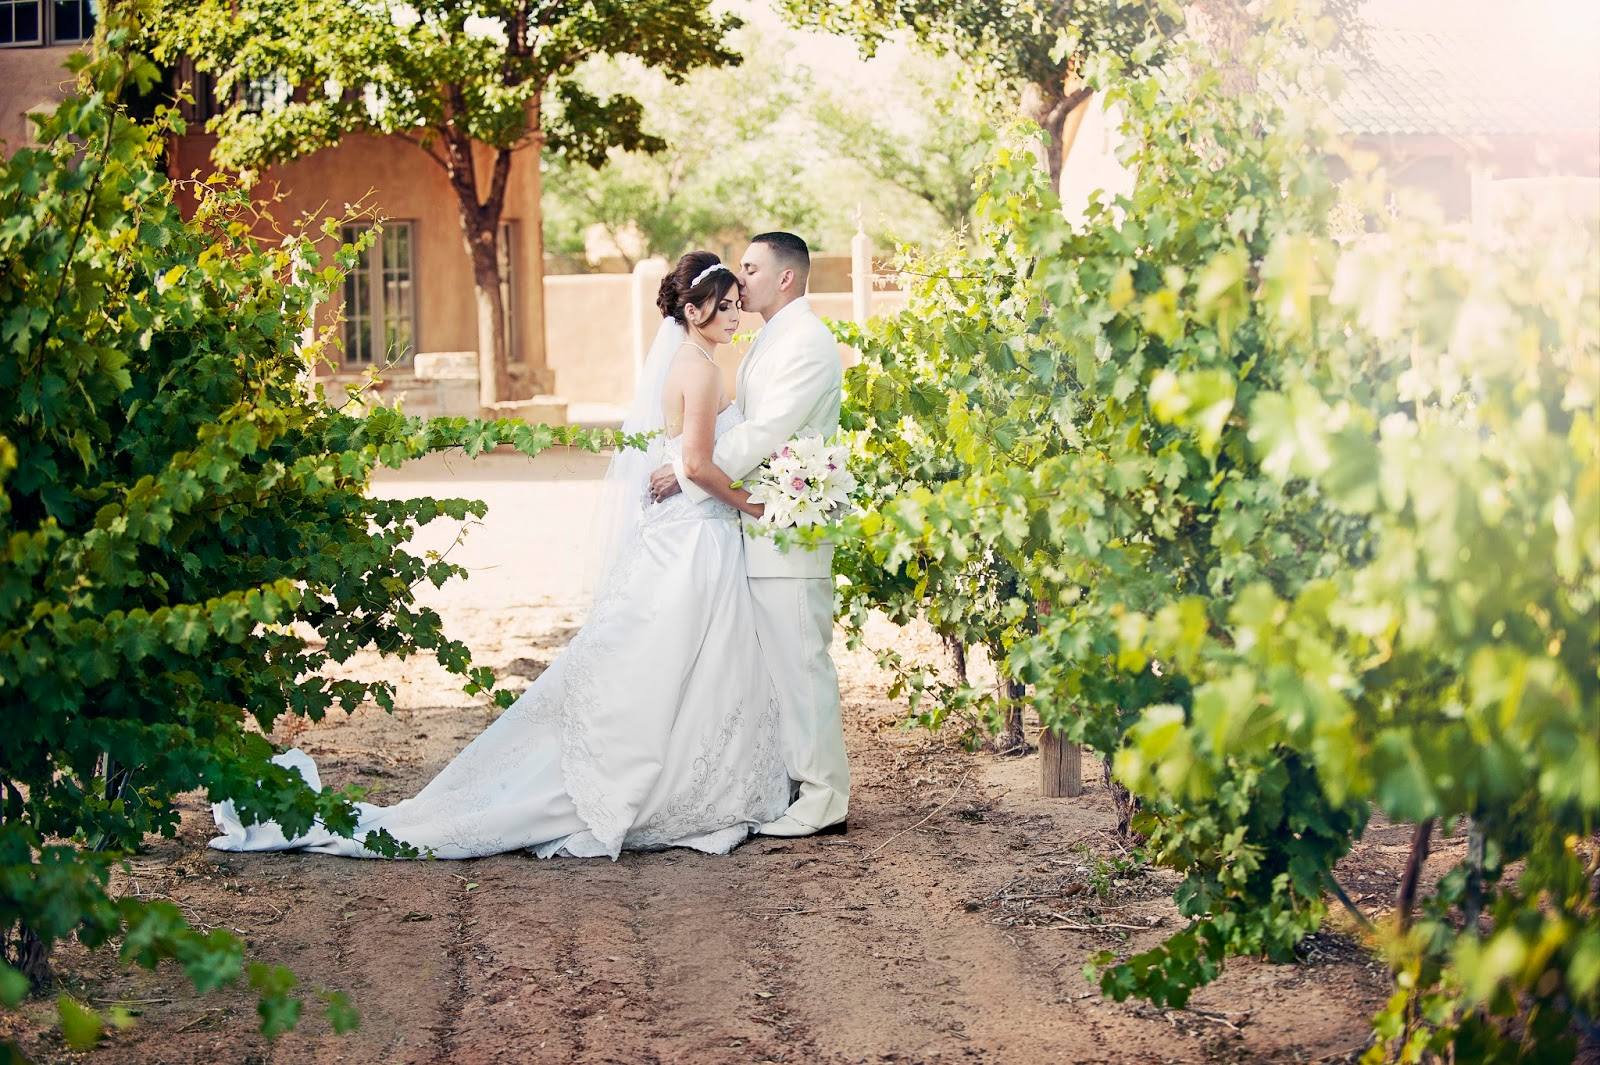 Casa Rondena Wedding, Albuquerque wedding at Casa Rondena, Weddings at Casa Rondena, Albuquerque wedding photographer, Maura Jane Photography, new mexico weddings, new mexico wedding photographer, wedding photographers in albuquerque, vinyard wedding